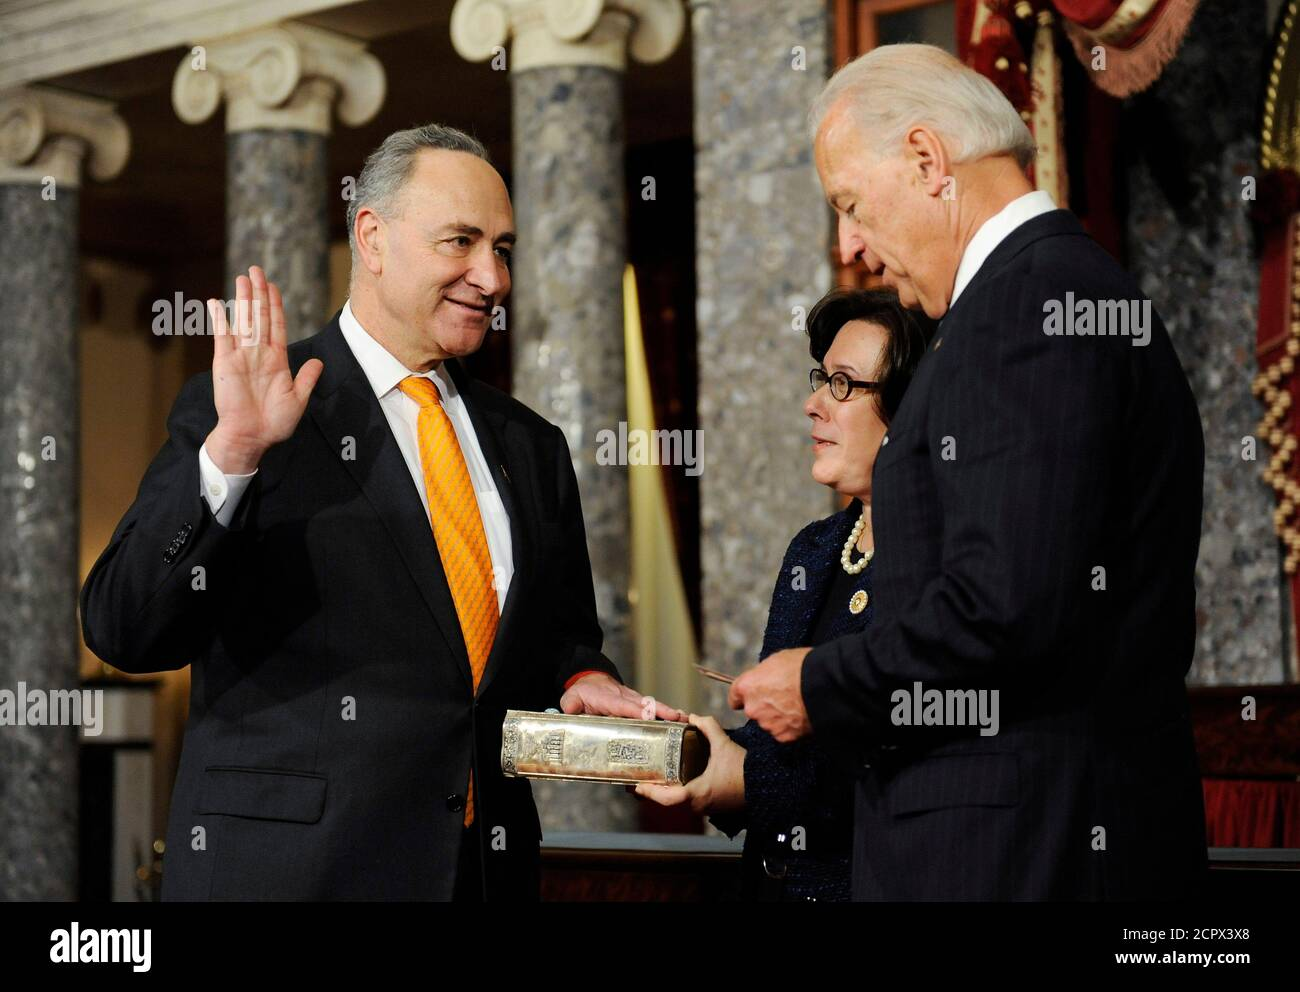 Weinshall High Resolution Stock Photography And Images Alamy 15.07.2019 · facts about chuck schumer's wife. https www alamy com us senator charles schumer d ny l stands next to his wife iris weinshall c as he takes part in a ceremonial re enactment of his swearing in by vice president joe biden in the old senate chamber at the us capitol in washington january 5 2011 reutersjonathan ernst united states tags politics image375514000 html